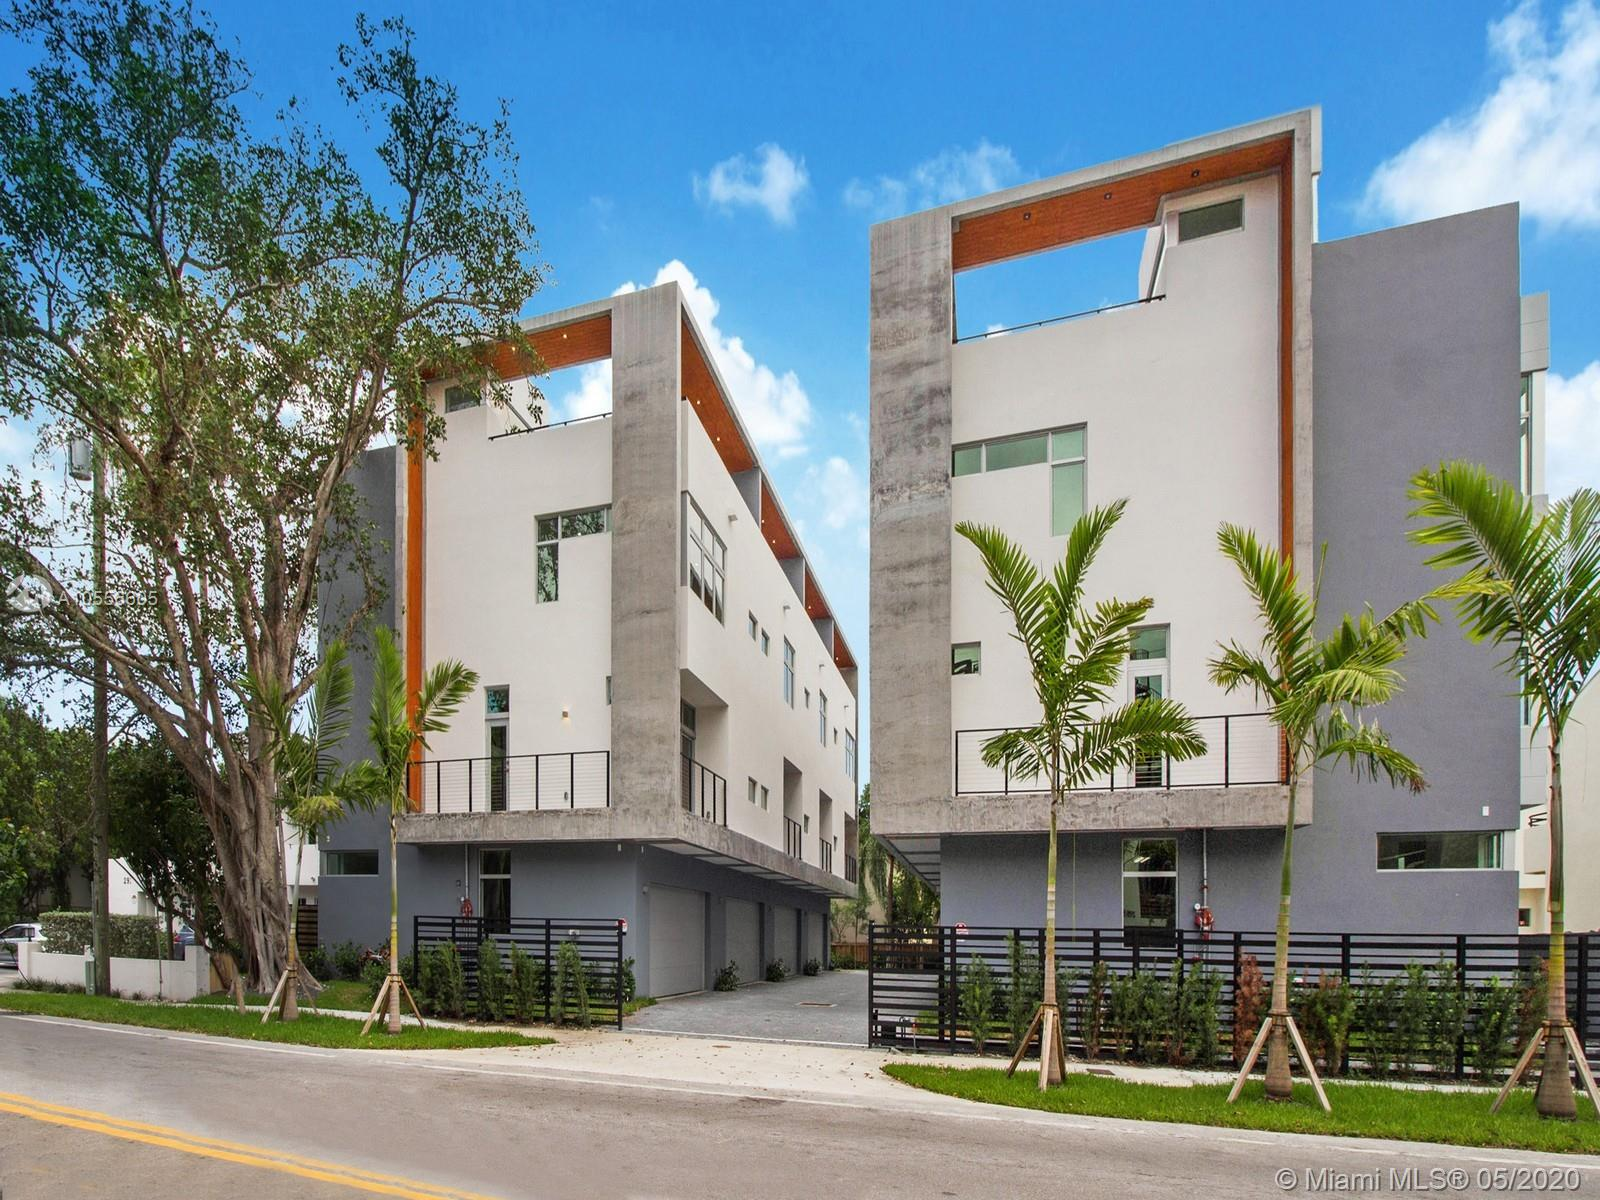 Least expensive 2020 new construction 3-bedroom townhome with a 2-car garage in the heart of Coconut Grove! HABITAT AT THE GROVE is a brand-new boutique community with 8 hip urban townhouses. Two different floor plan options all with Bosch appliances and custom modern finishes. All impact glass windows and doors.  Large private outdoor roof terrace with options for a summer kitchen and jacuzzi.  Best walkability to all the chic new and planned boutiques, cafes, restaurants, offices, and parks in Coconut Grove. Centrally located to Miami International Airport, Coral Gables and Downtown Miami.  Ready for immediate occupancy!  A must consider if you are looking for brand new construction in 33133.